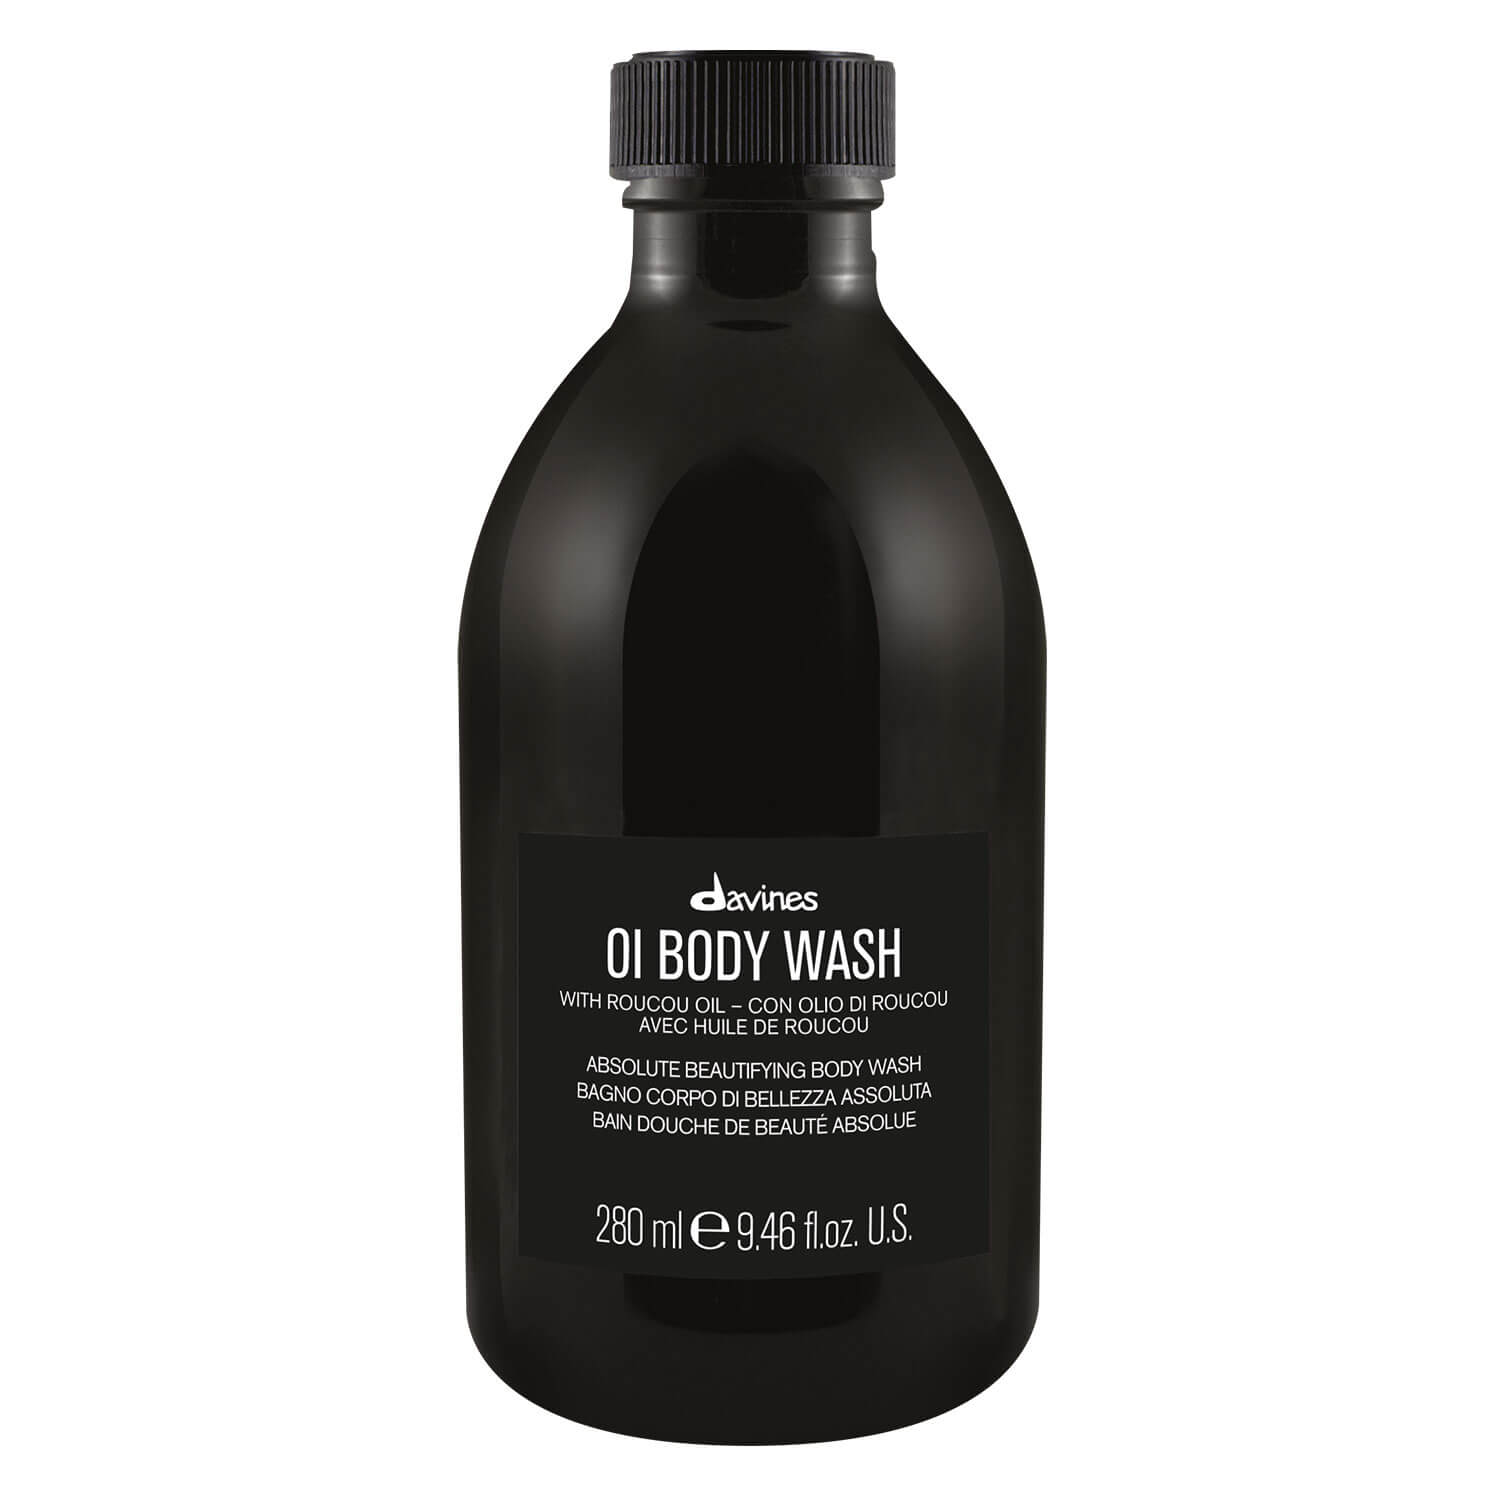 Oi - Body Wash